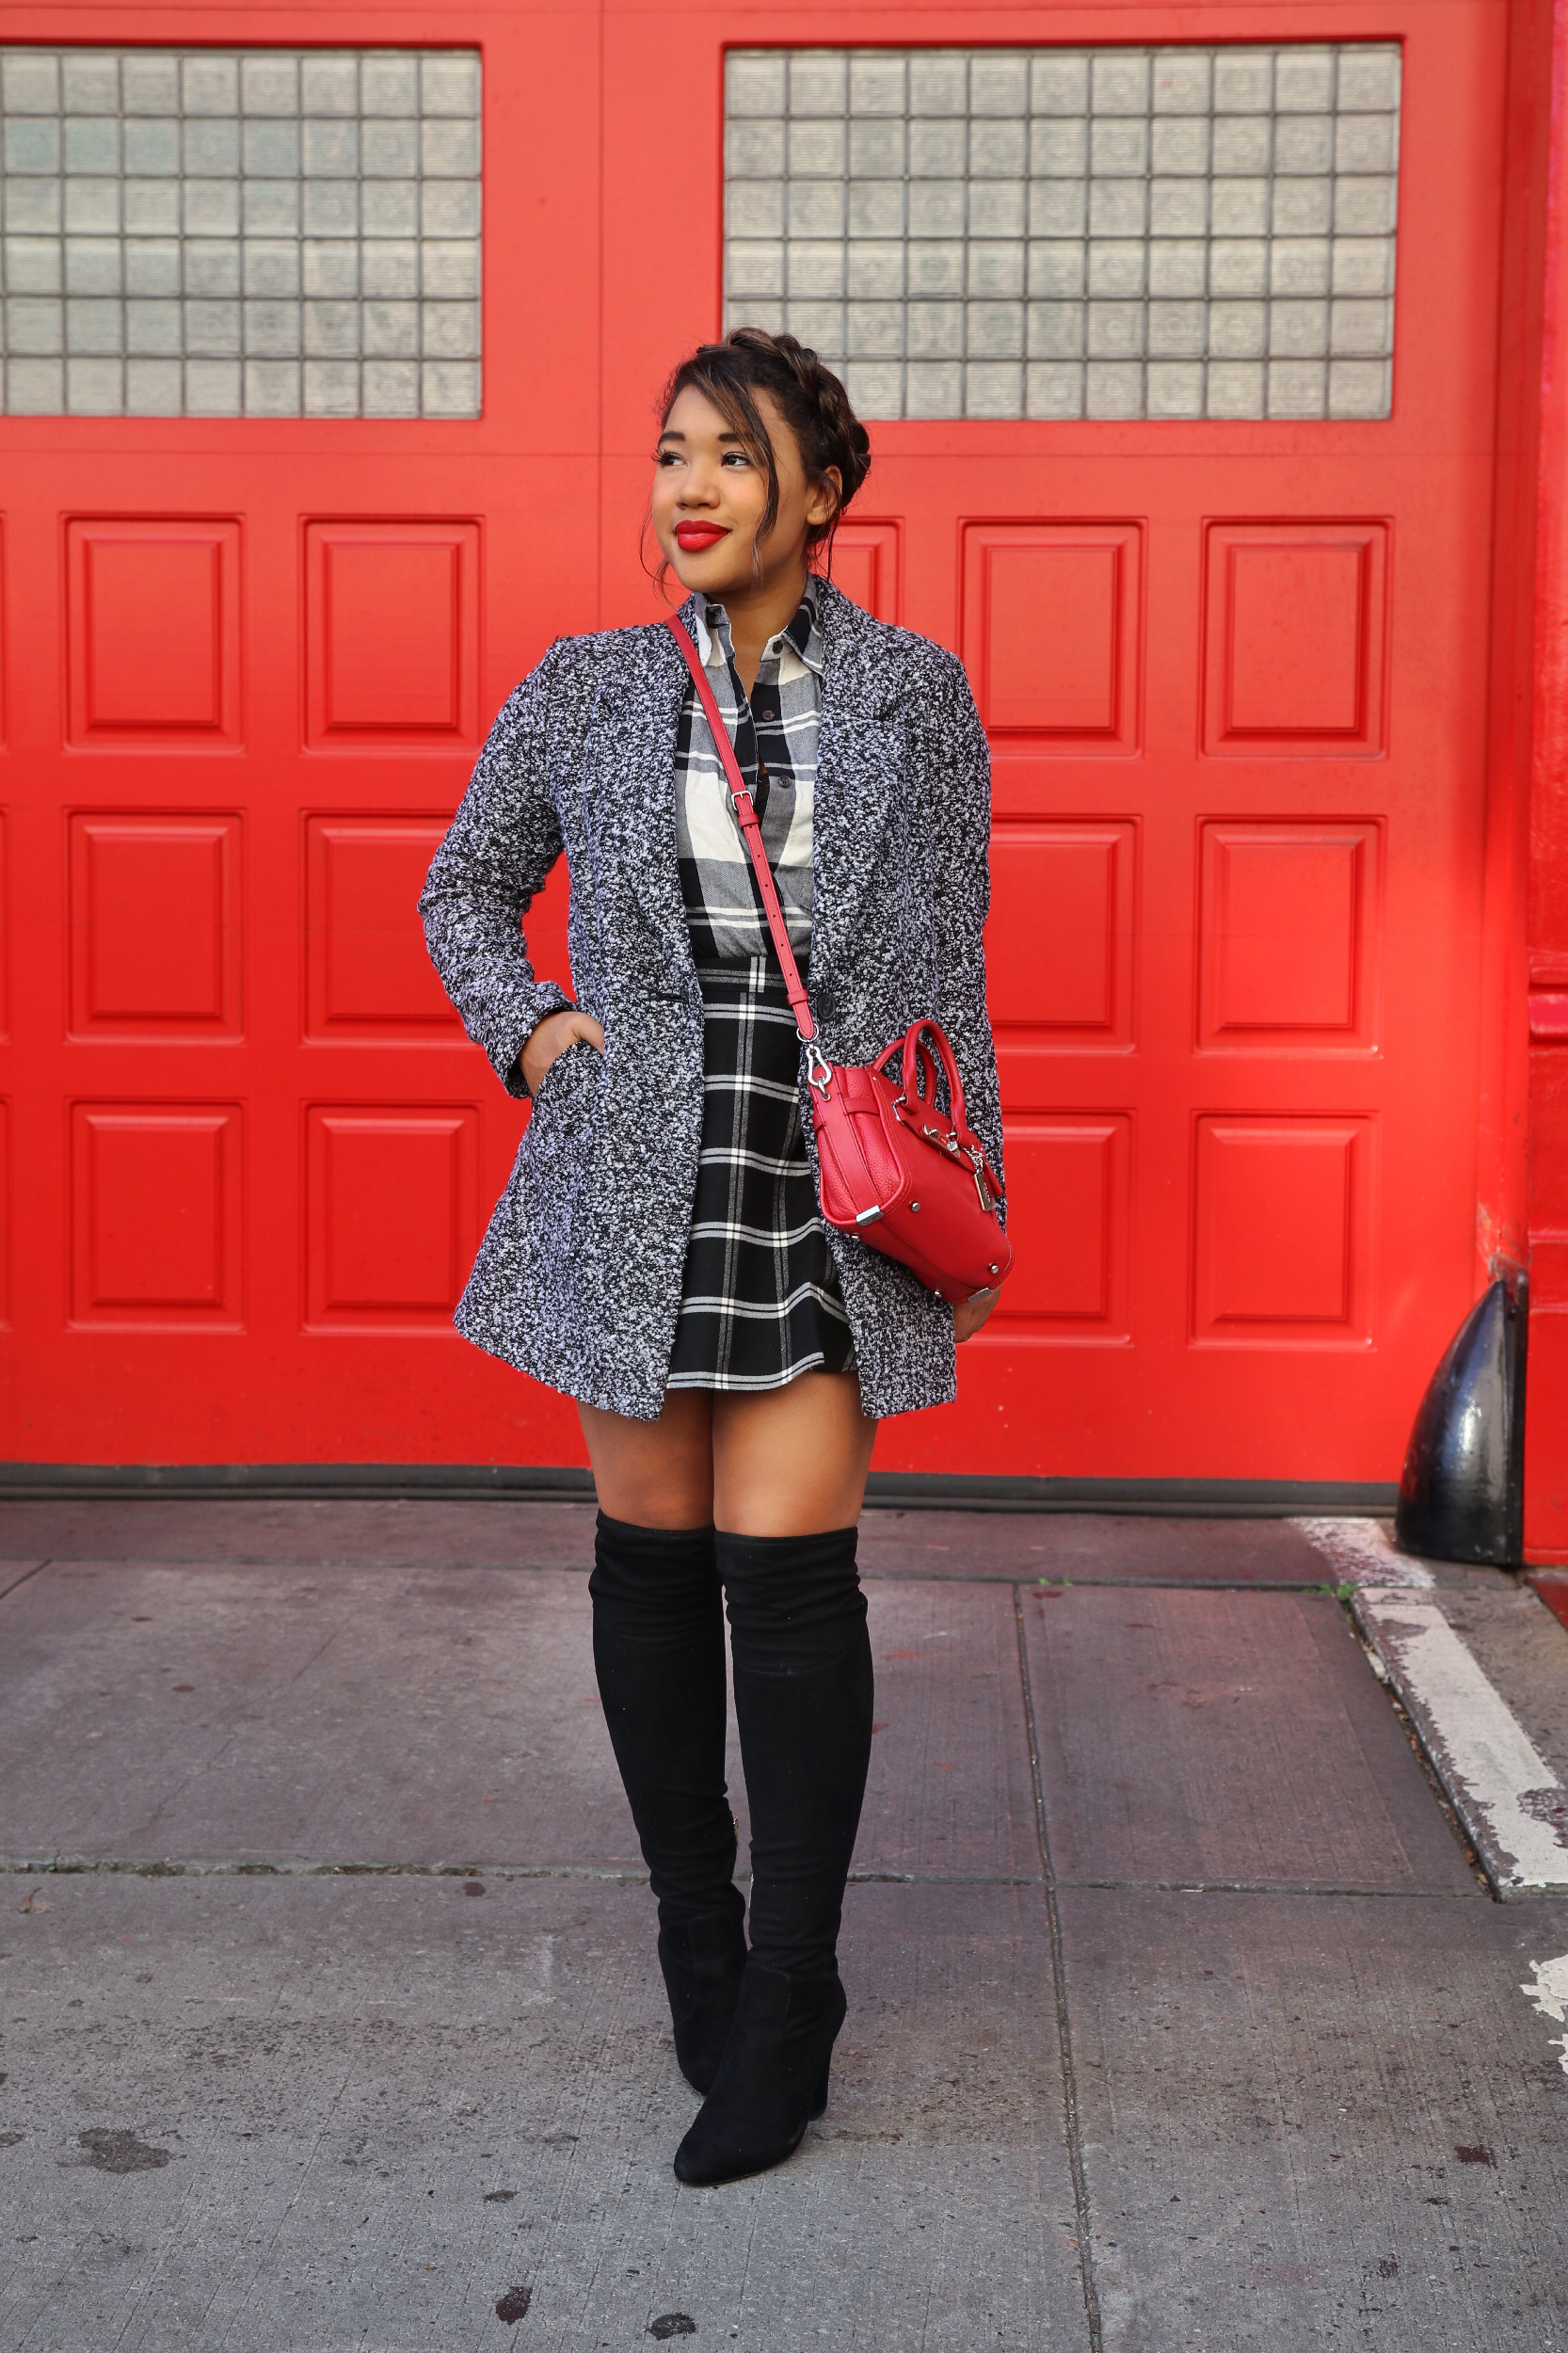 Over The Boots with plaid! Fall style by Color Me Courtney (@colormecourtney) // How to wear plaid for fall #plaid #overthekneeboots #otkboot #patternmixing #blackandwhite